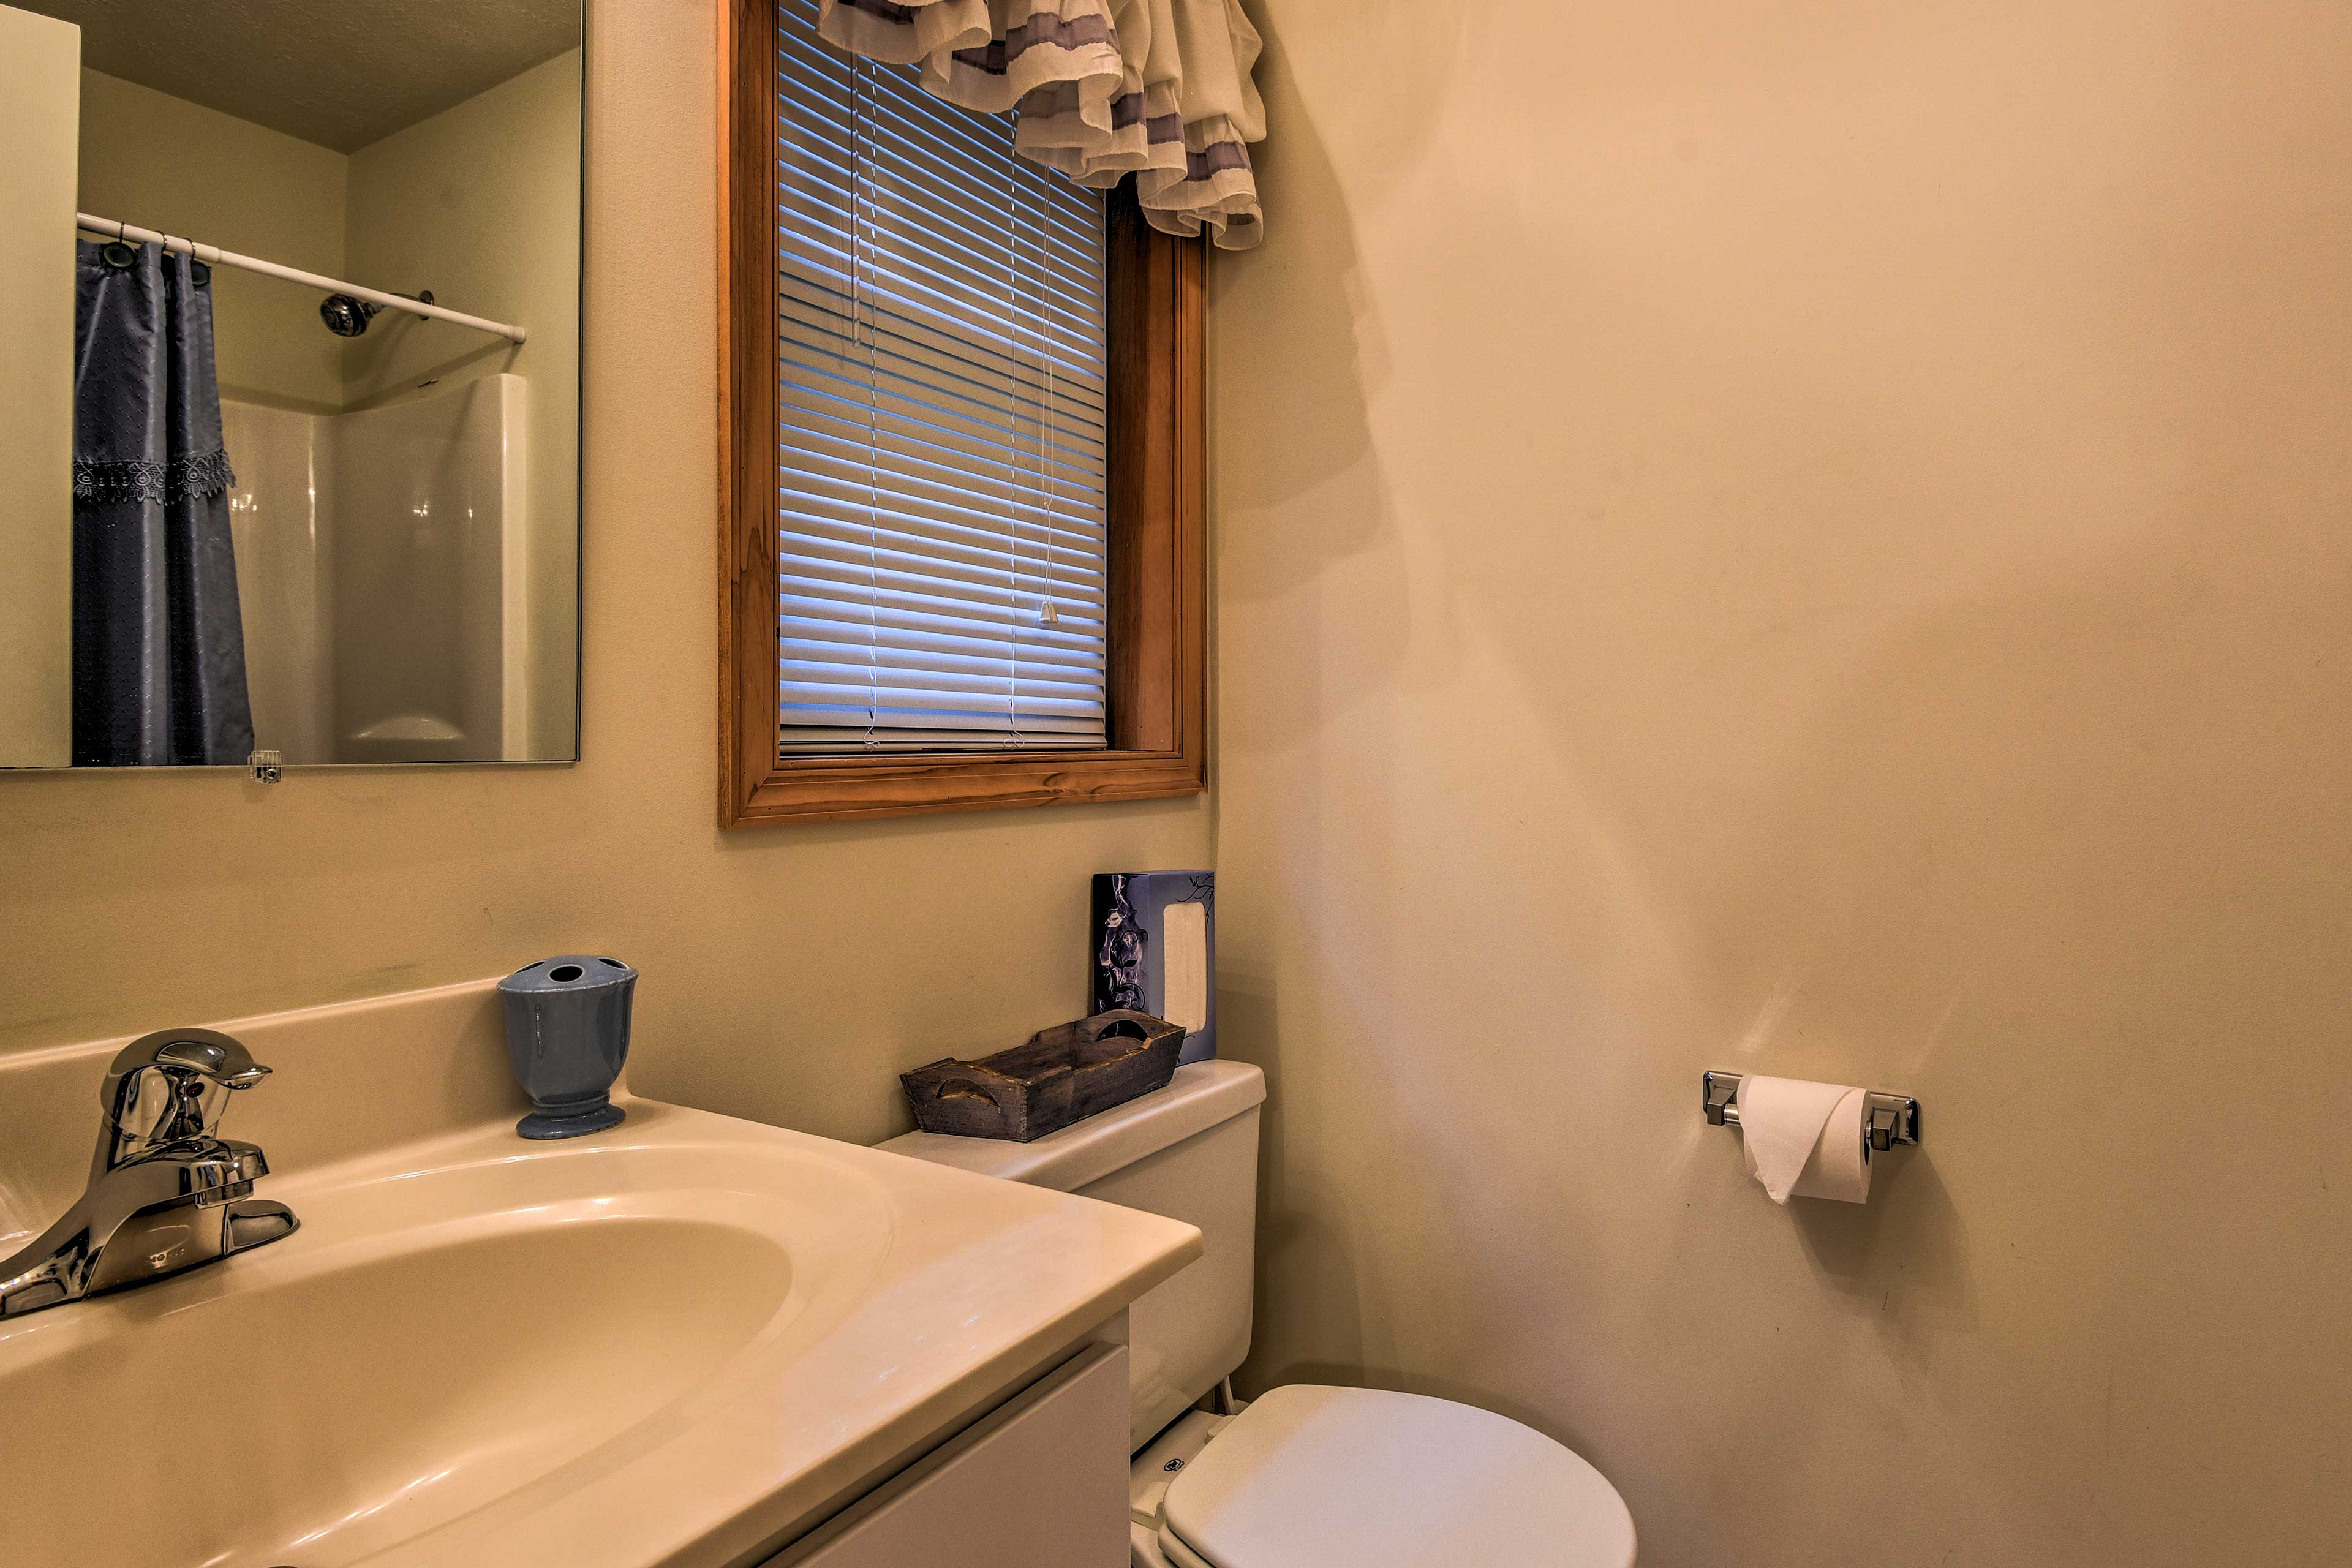 This home features 2 full bathrooms.